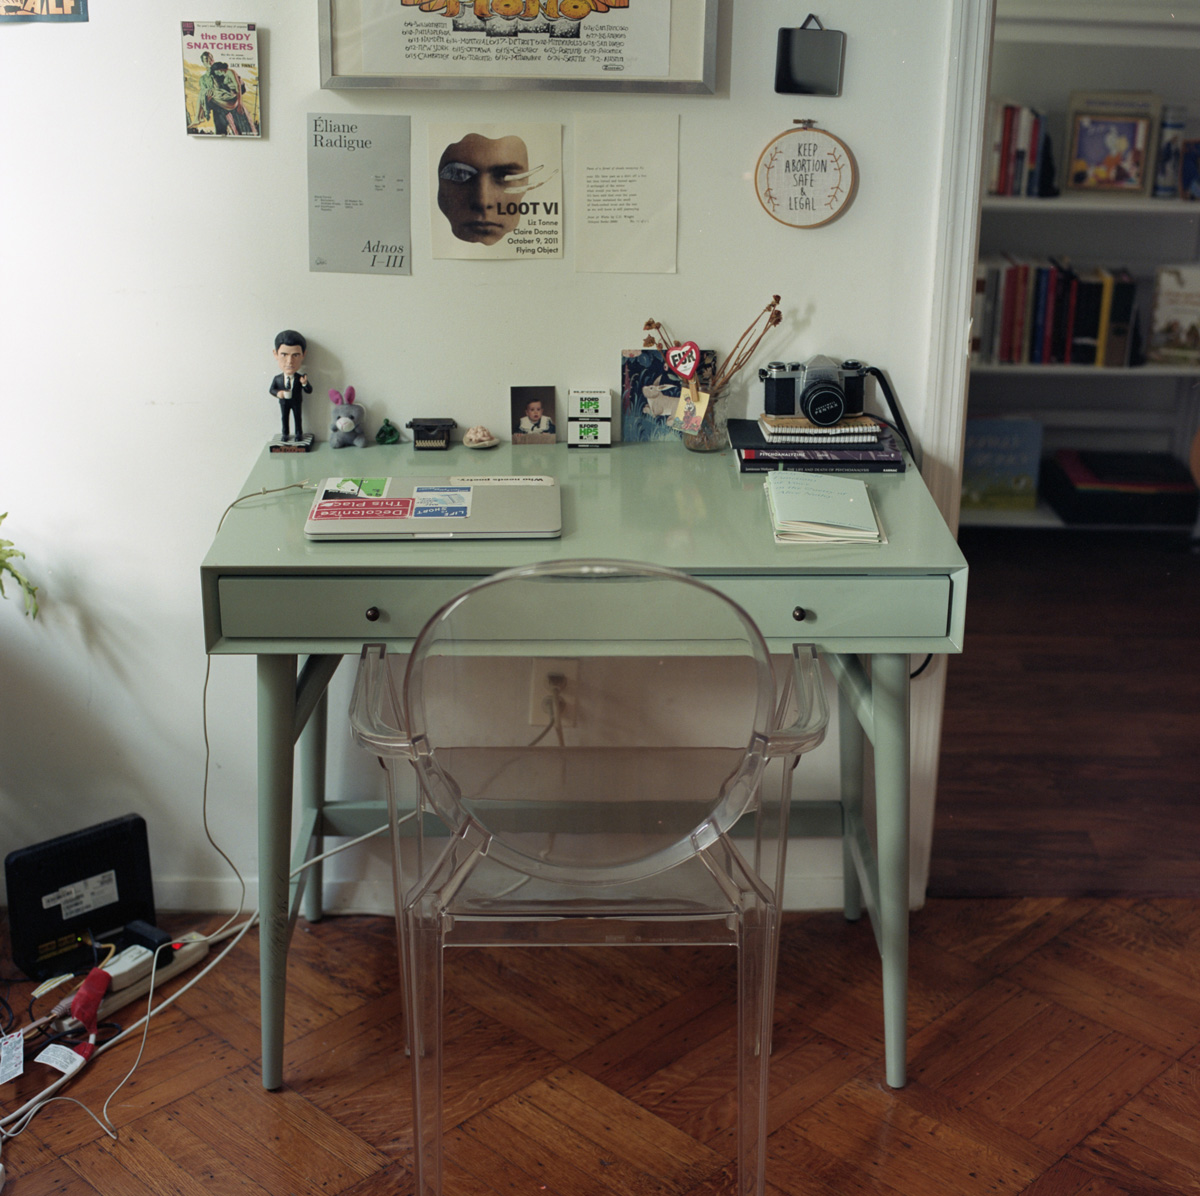 Clear plastic chair pulled up to mint-colored writing desk with sticker-covered laptop, figurines, pictures, notebooks, camera